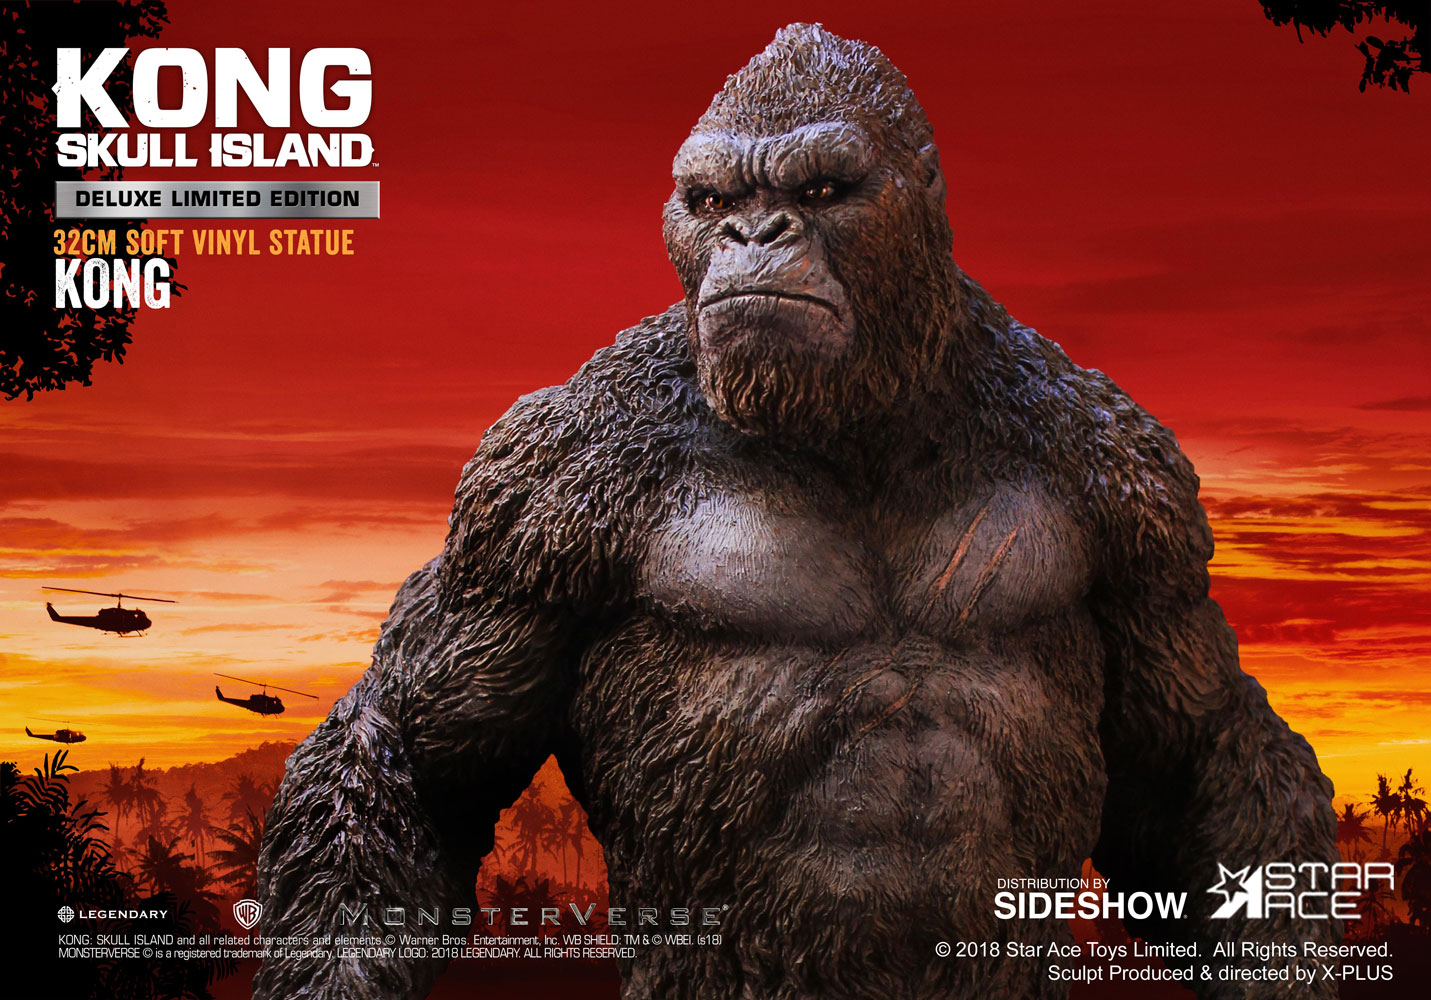 The Island King Kong Is From